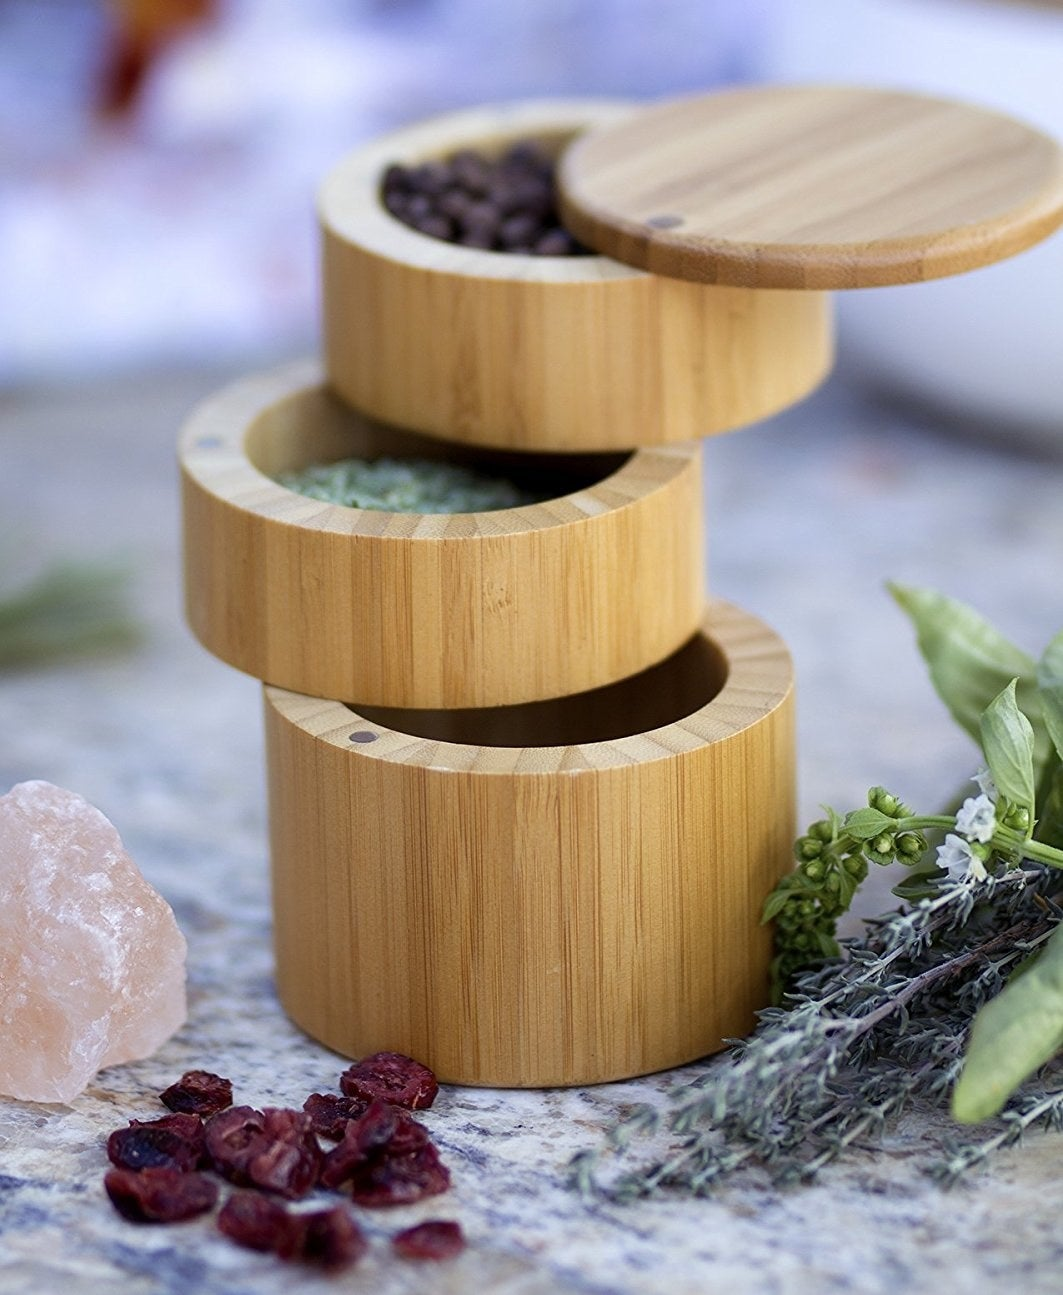 a close up of the cylindrical three tier bamboo storage box with different spices inside